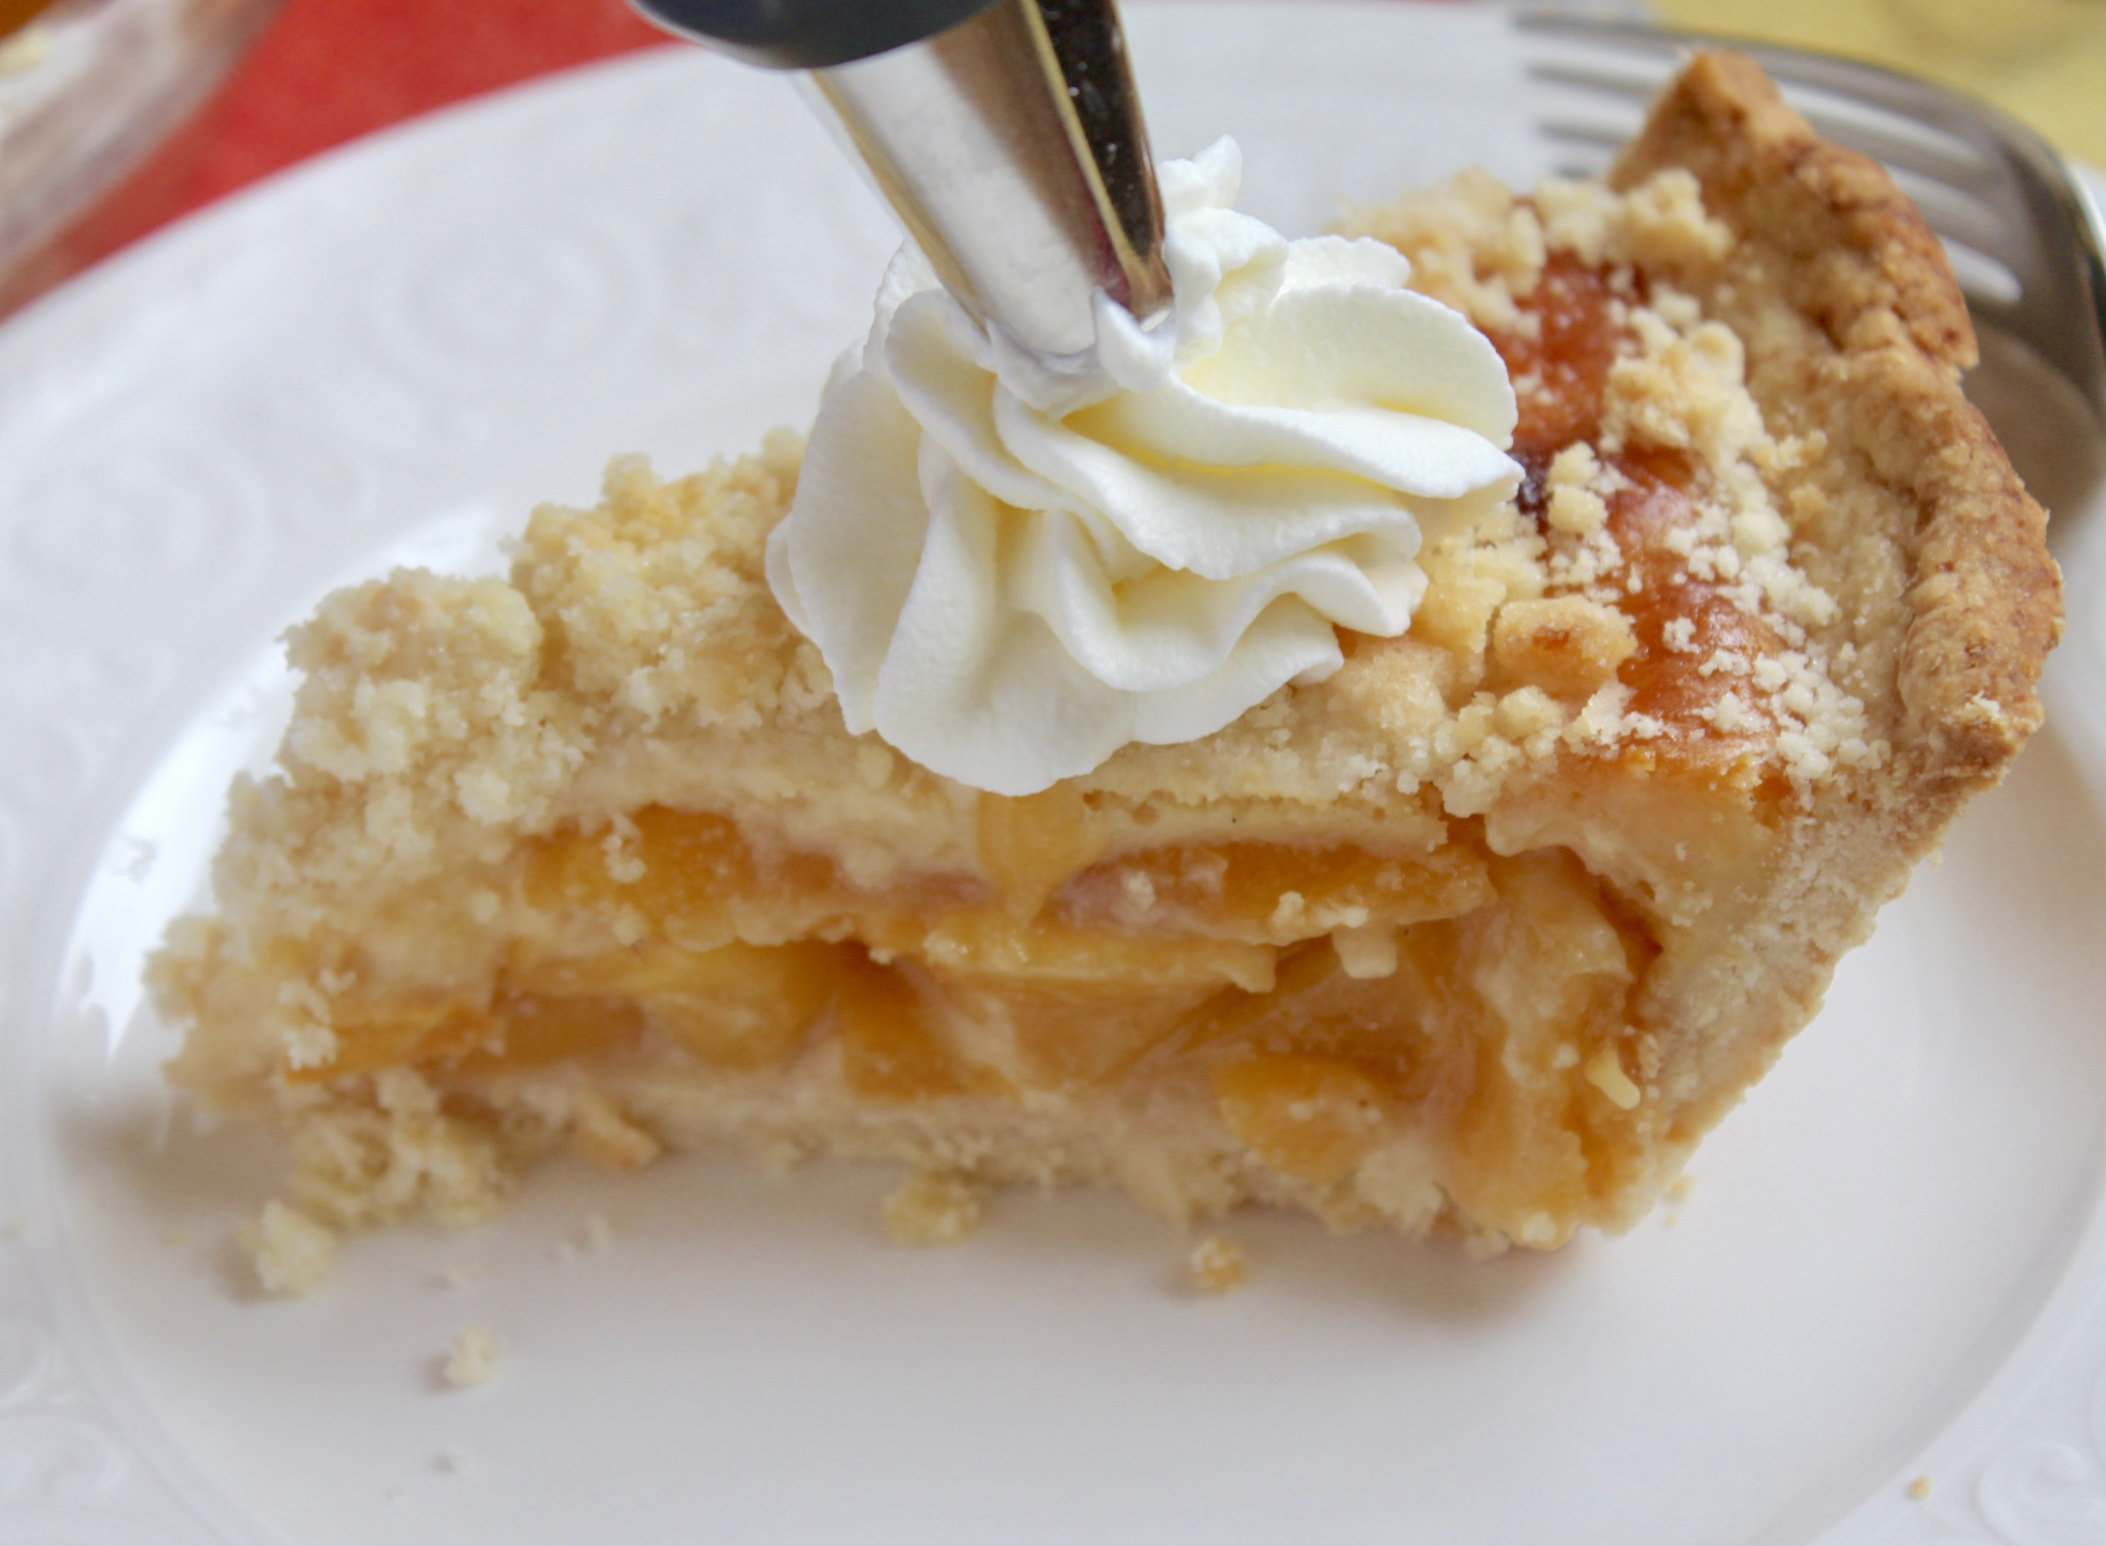 adding cream to slice of custard peach pie